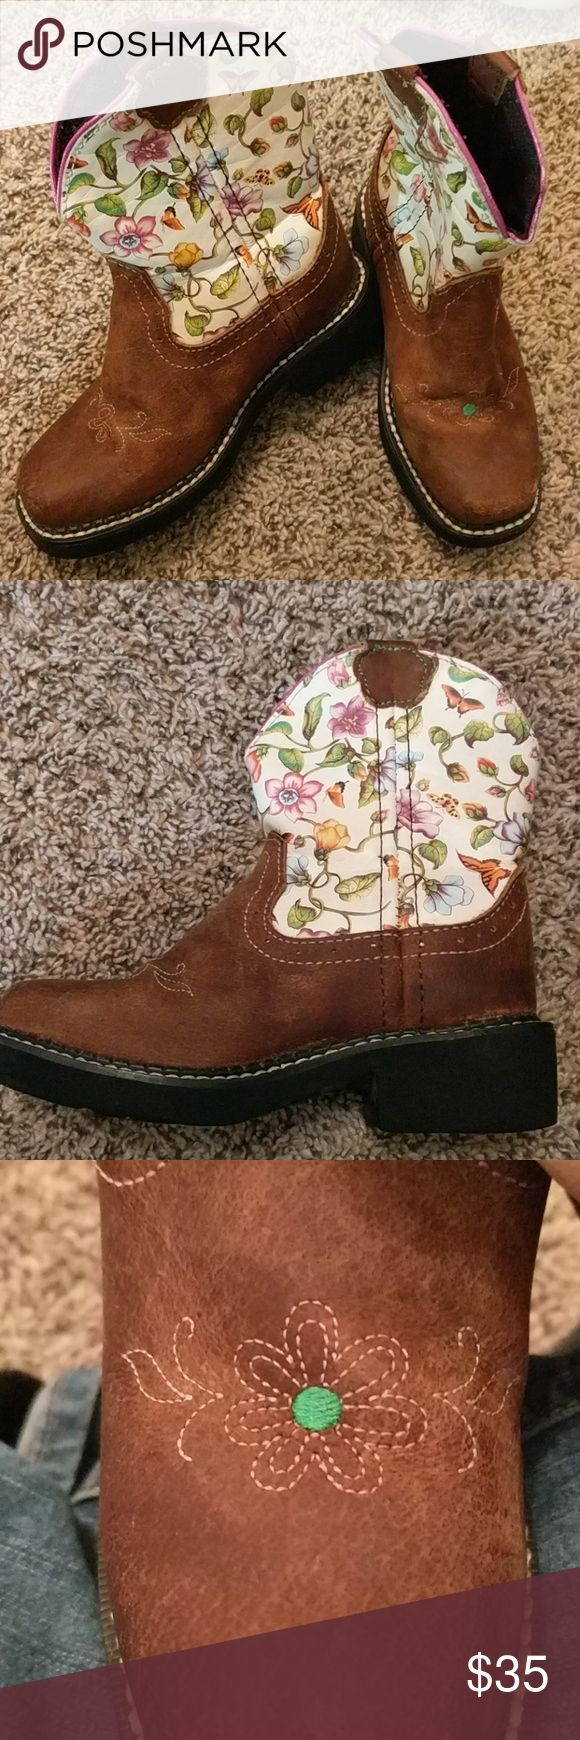 Toddler cowgirl boots Adorable Justin toddler cowgirl boots.  Excellent condition. Justin Boots Shoes Boots